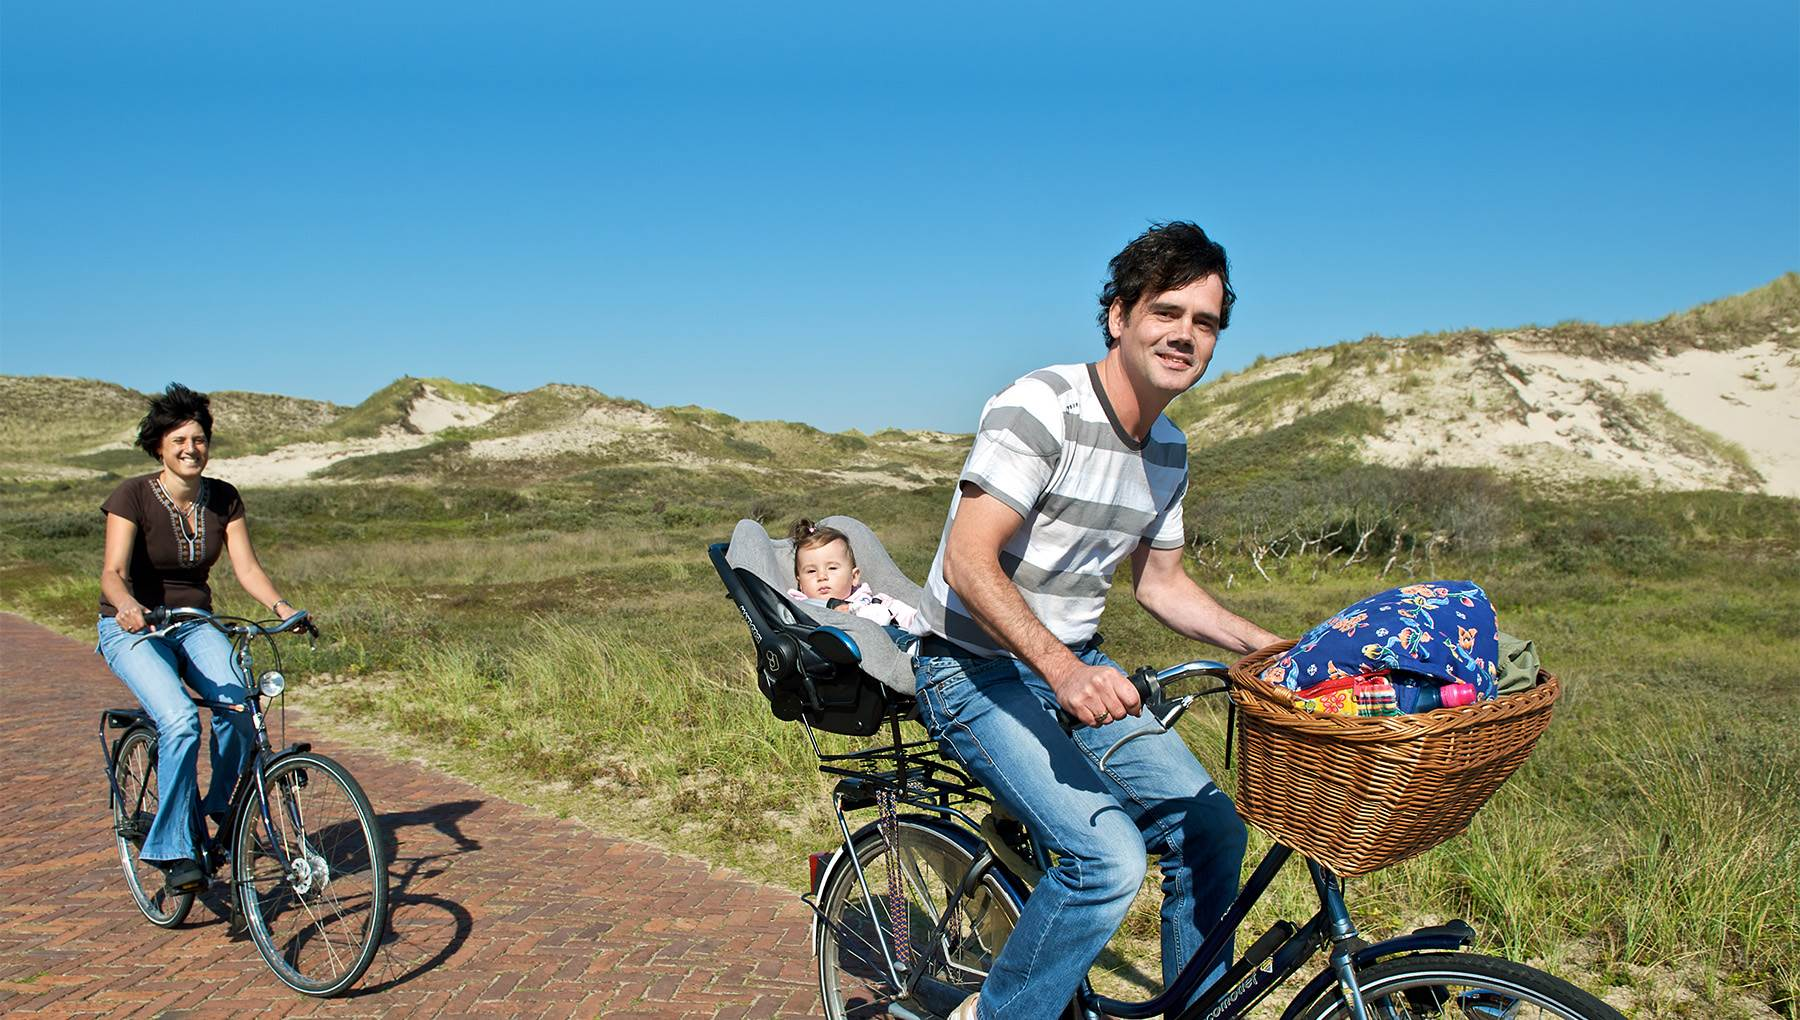 Amsterdam Family cycling in dunes Rob Verhagen